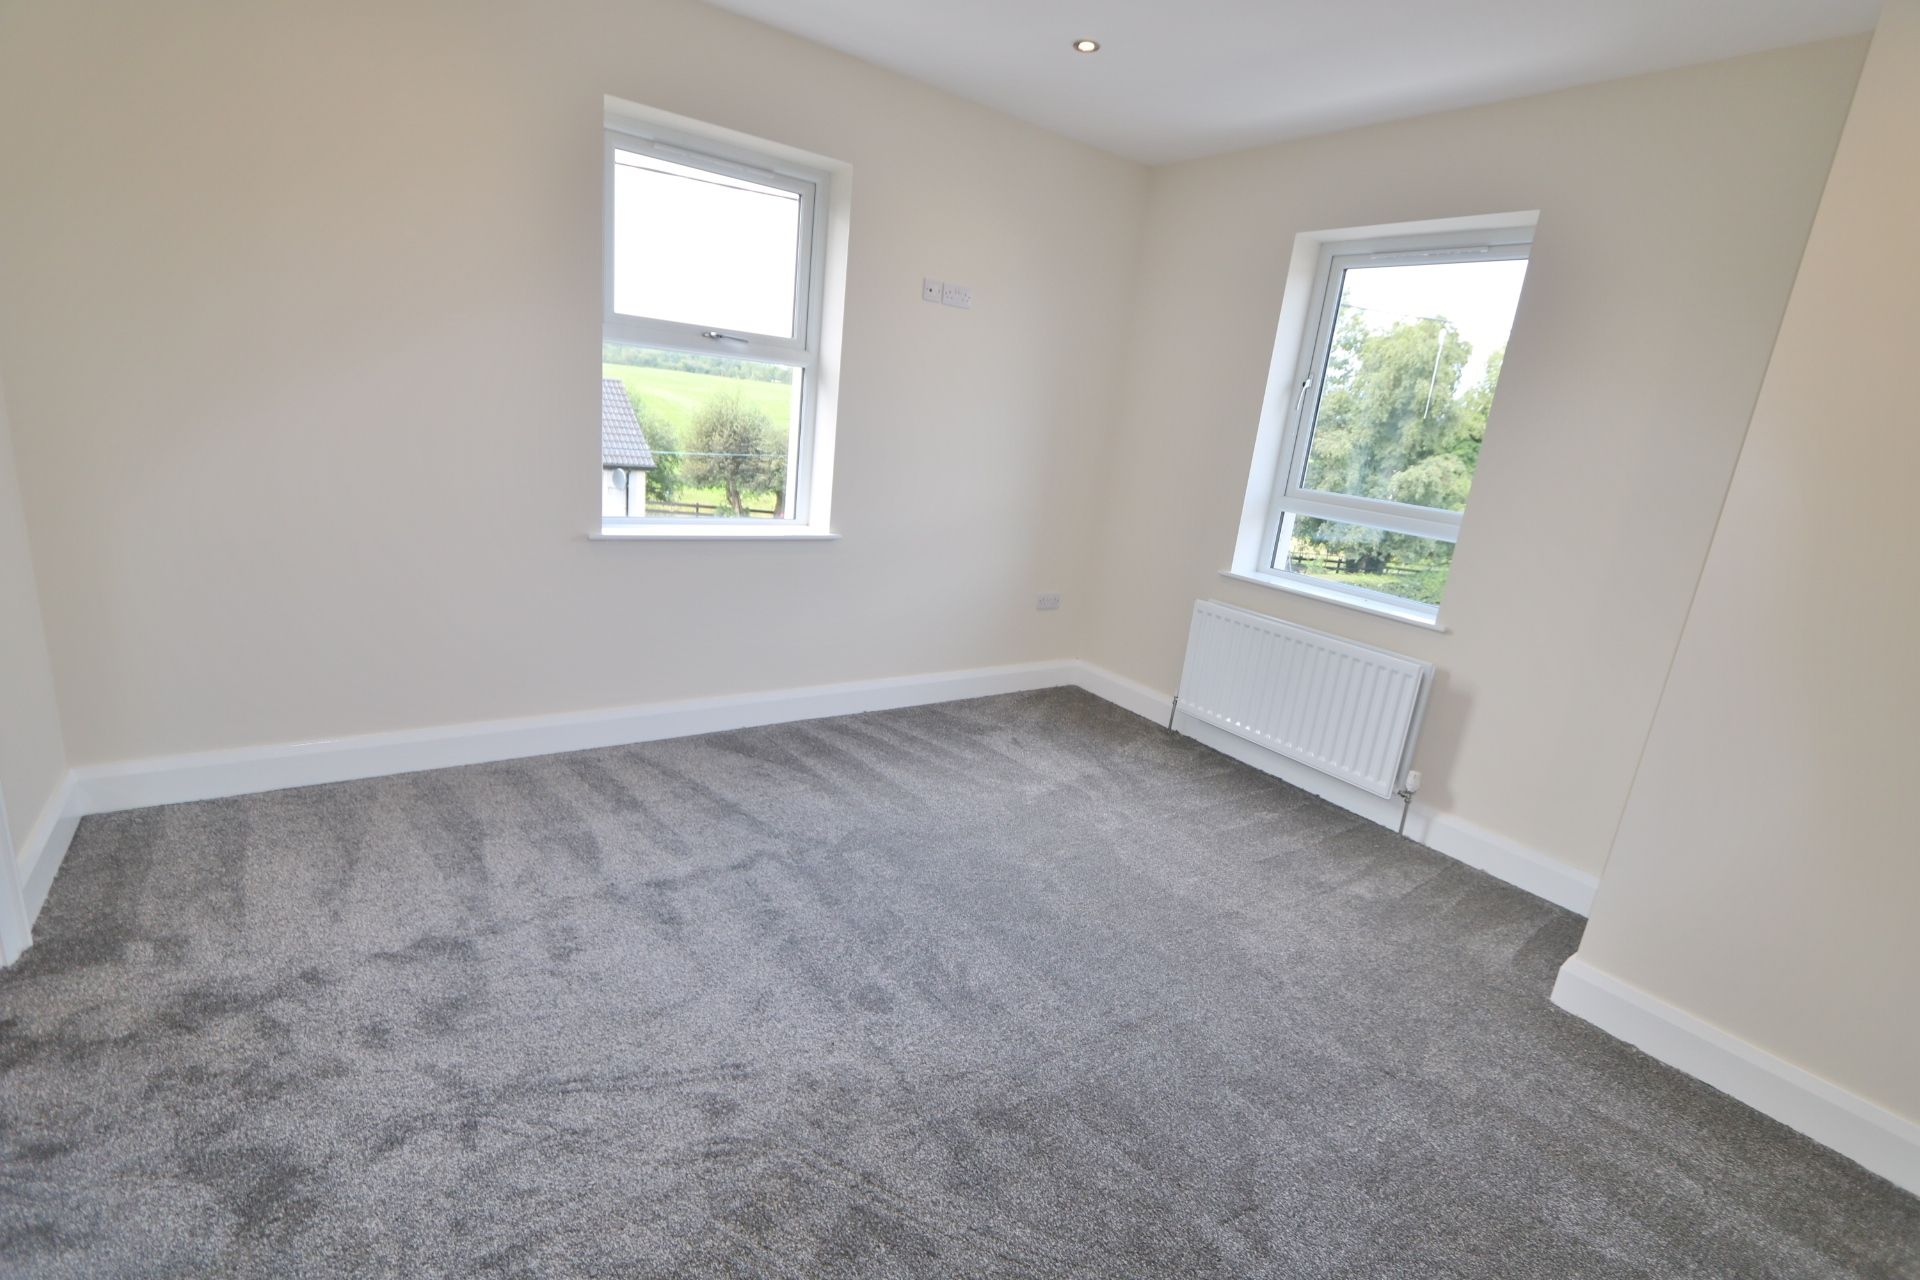 3 bedroom detached house For Sale in Milltown - Photograph 11